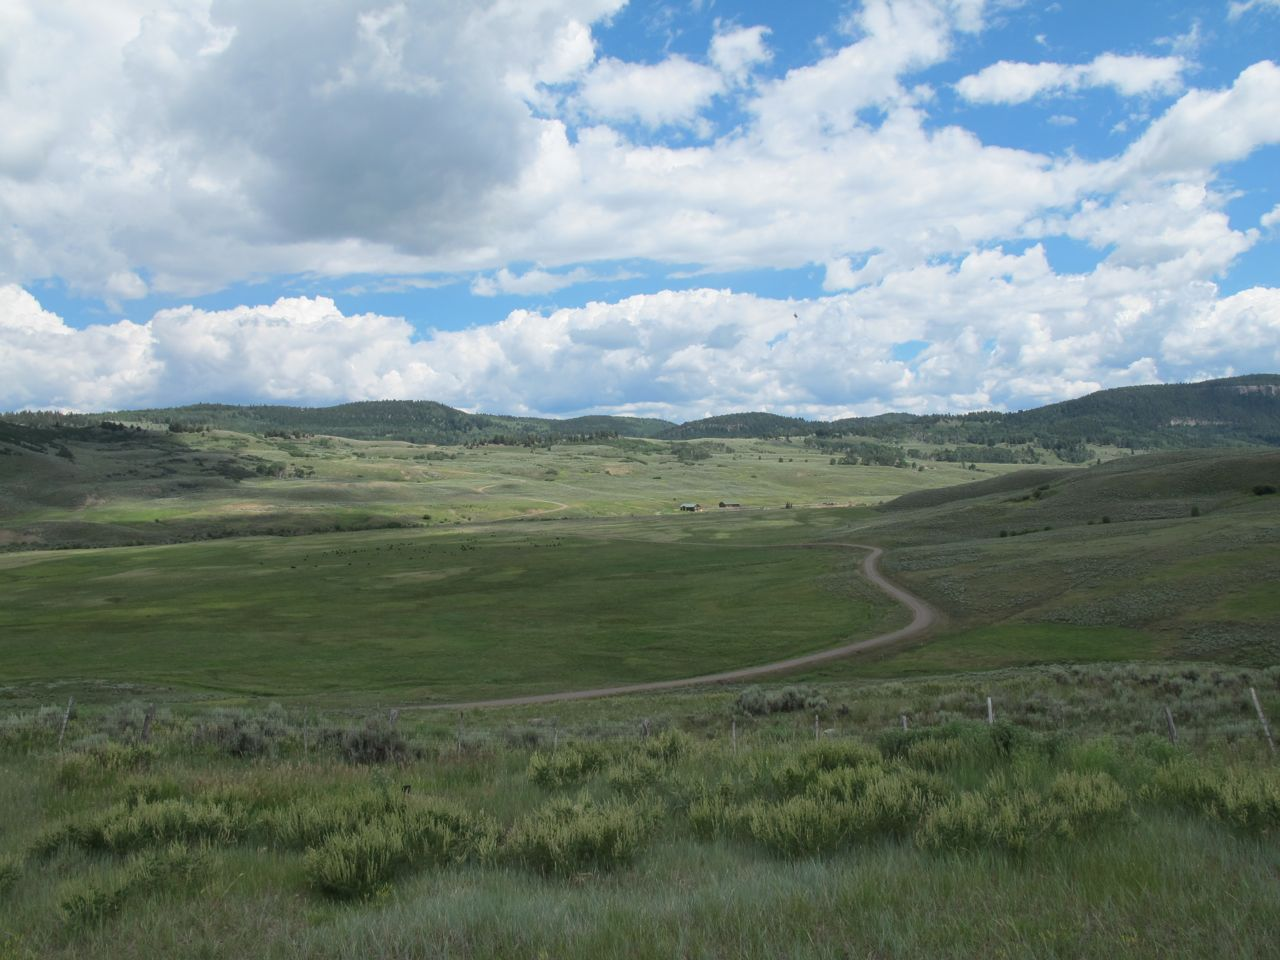 Foothills of the San Juan Mountains along US 50 east of Montrose, Colorado